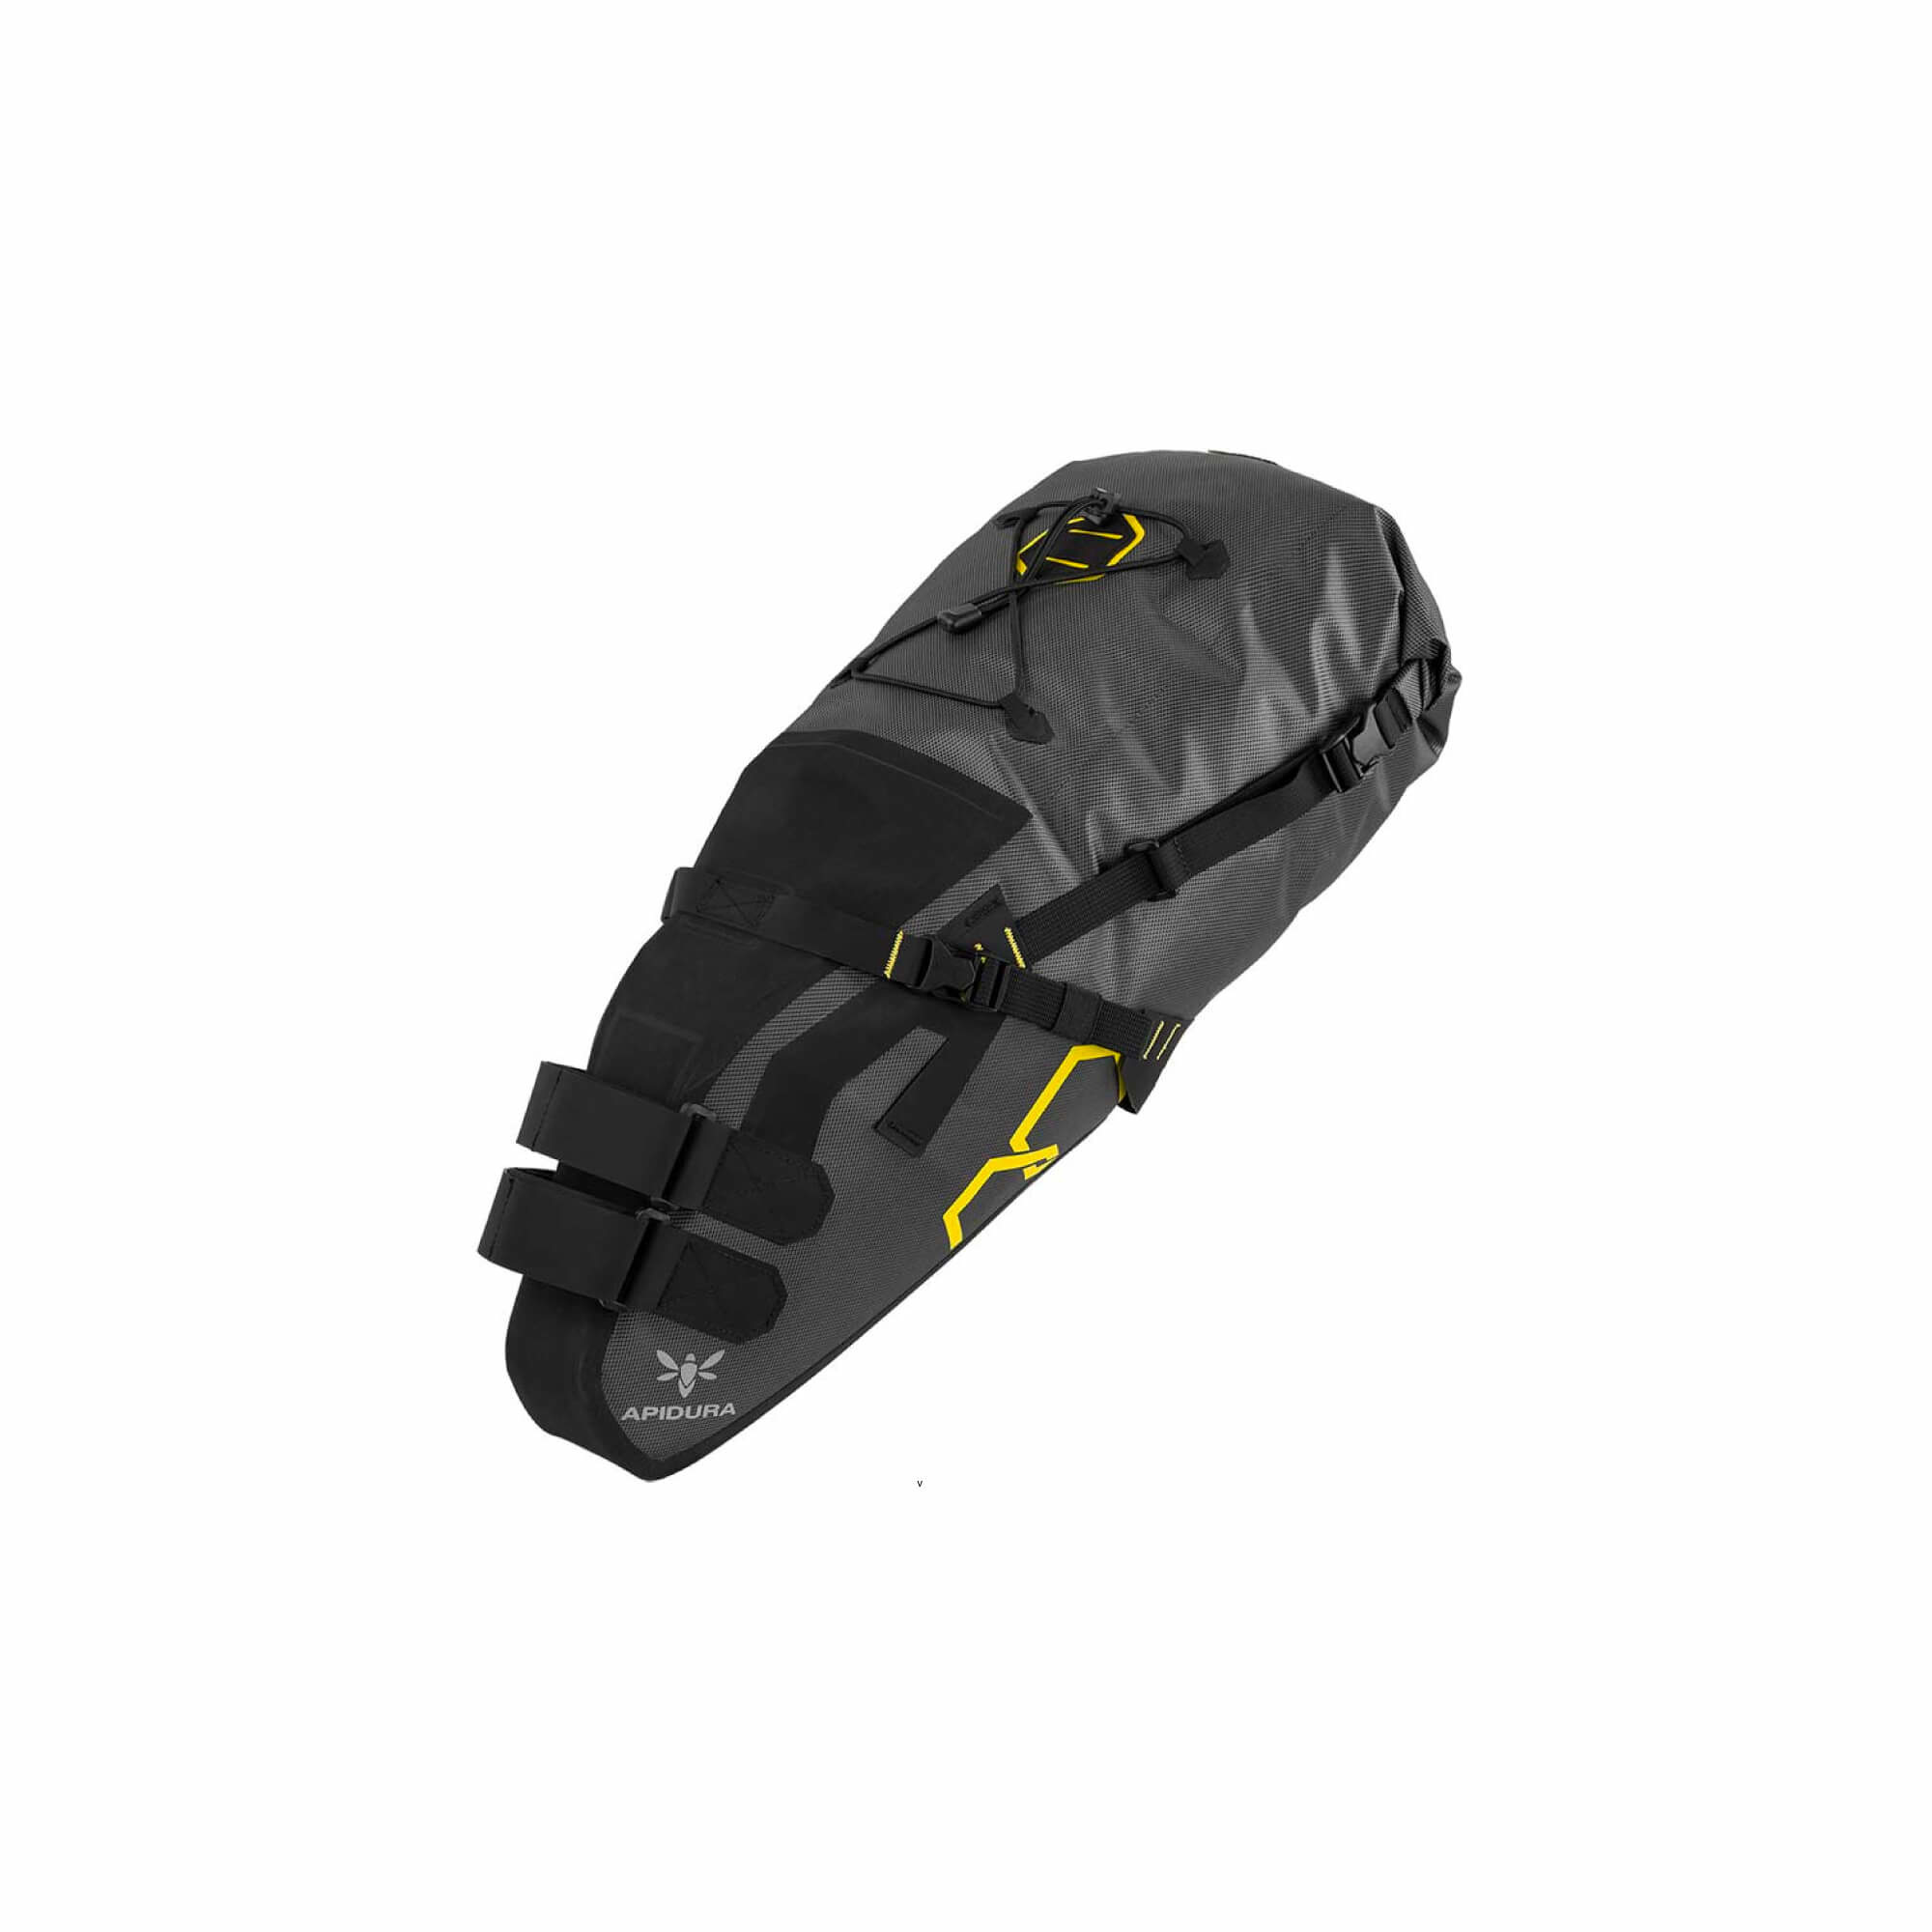 Expedition Saddle Pack 17 L-2